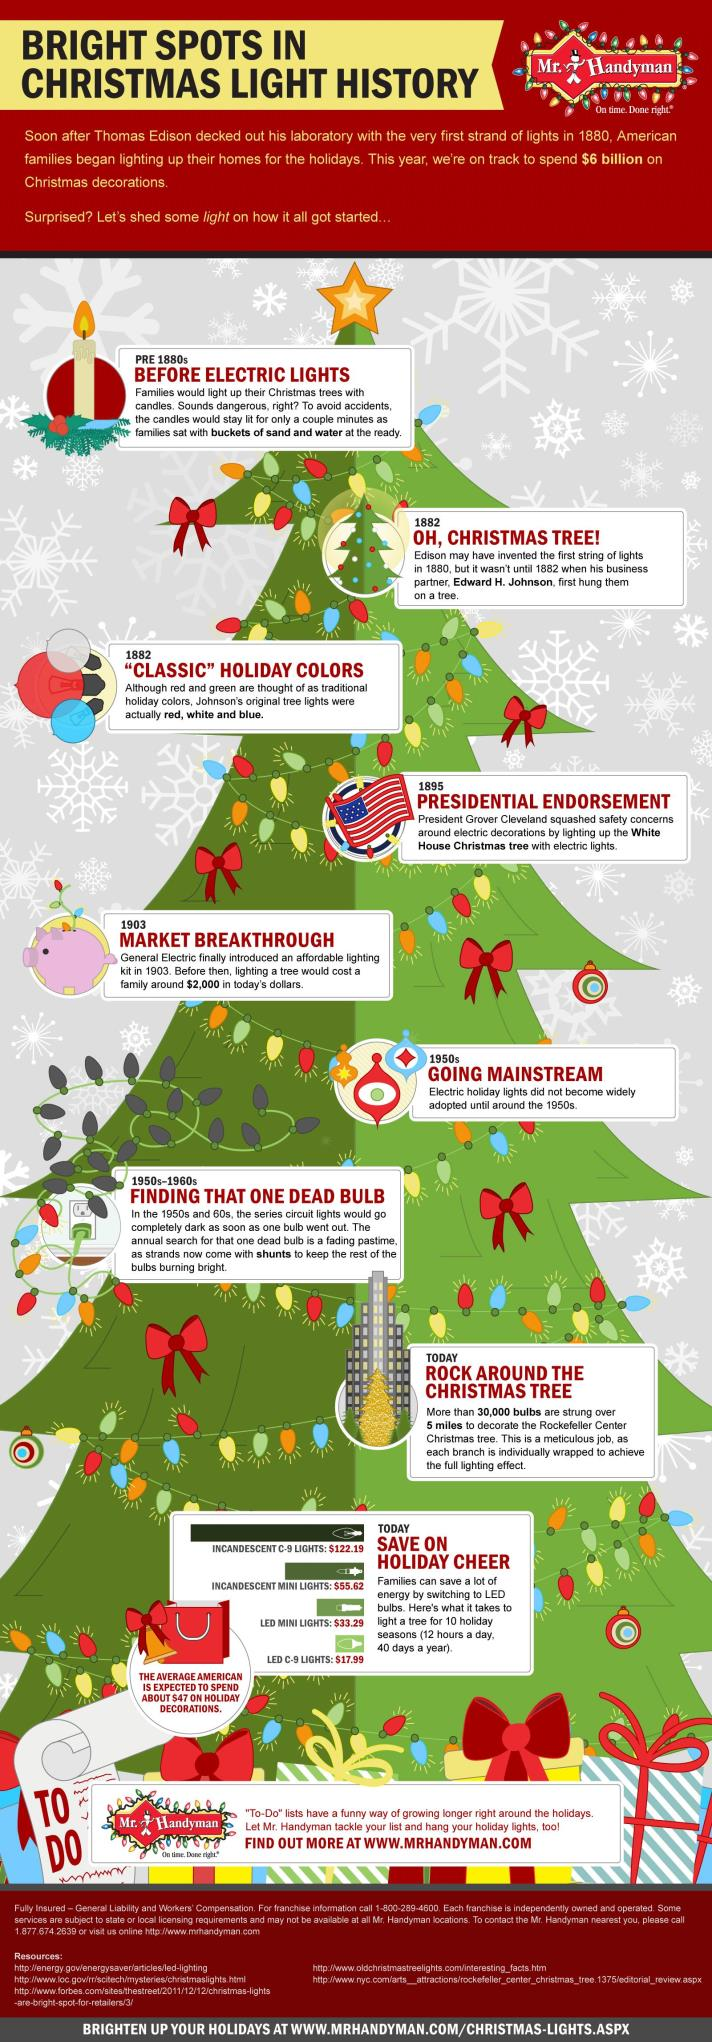 MrHandyman_Christmas_Lights2_Infographic